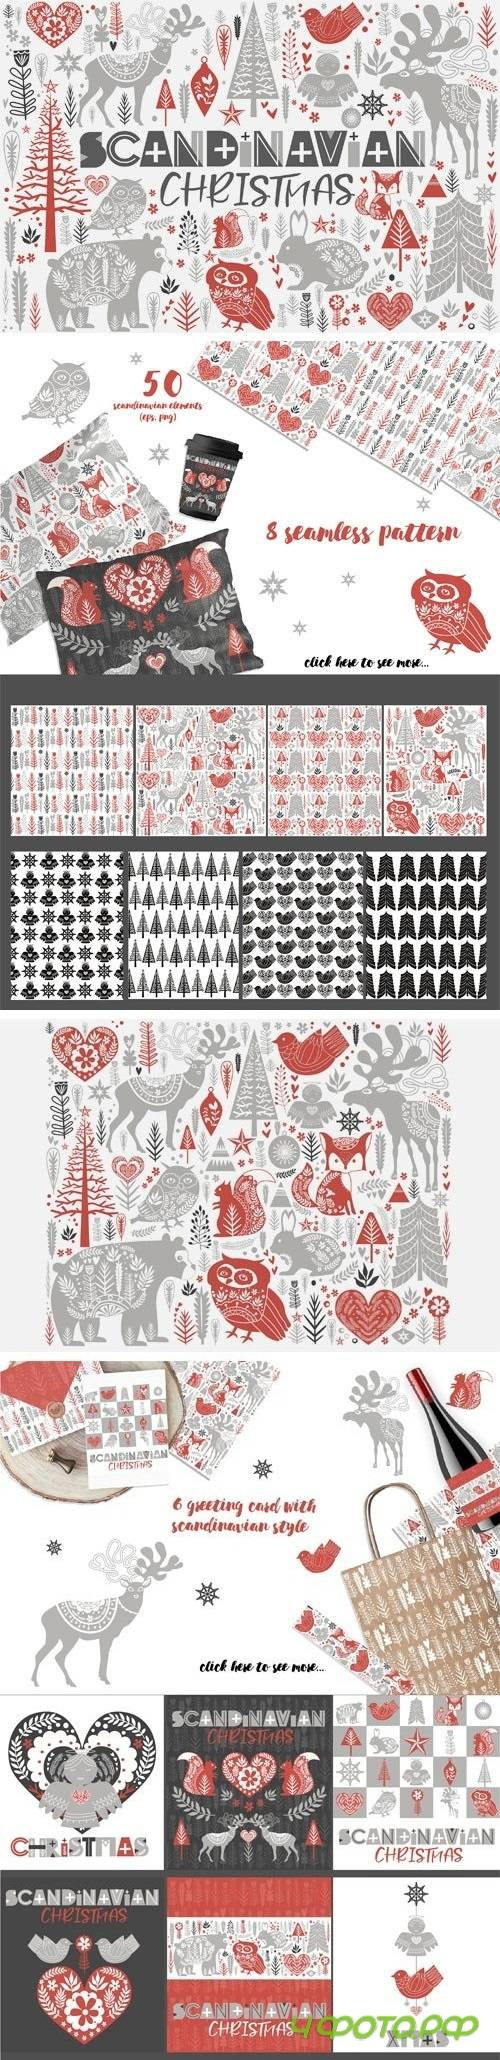 Scandinavian Christmas Set - 2052630